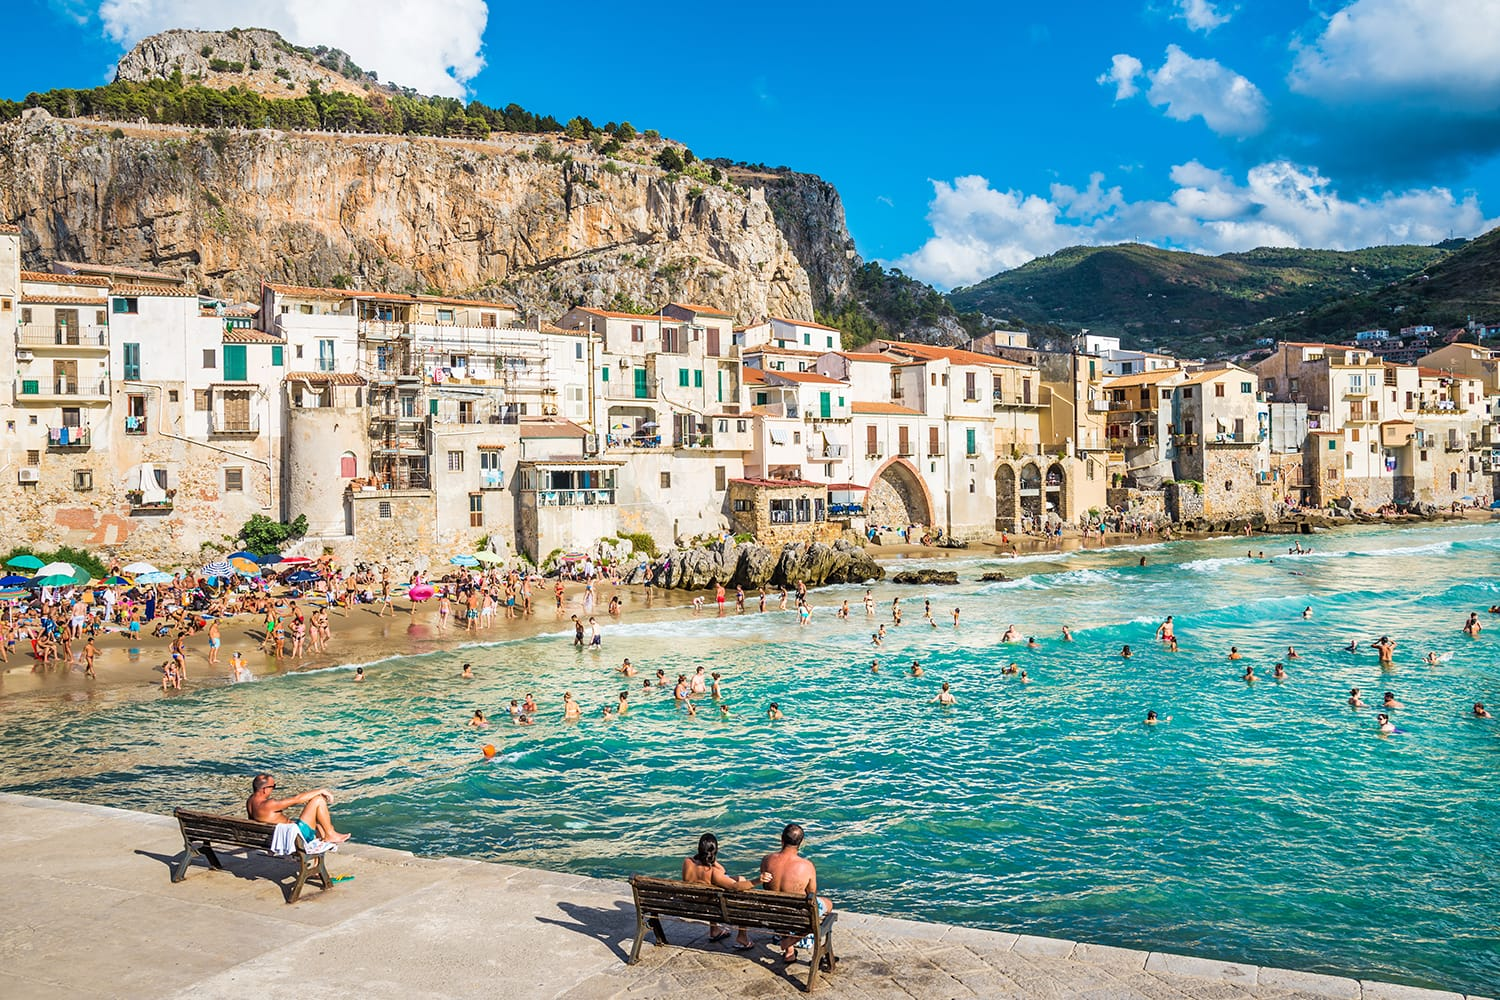 People on beautiful beach at the bay in Cefalu, Sicily